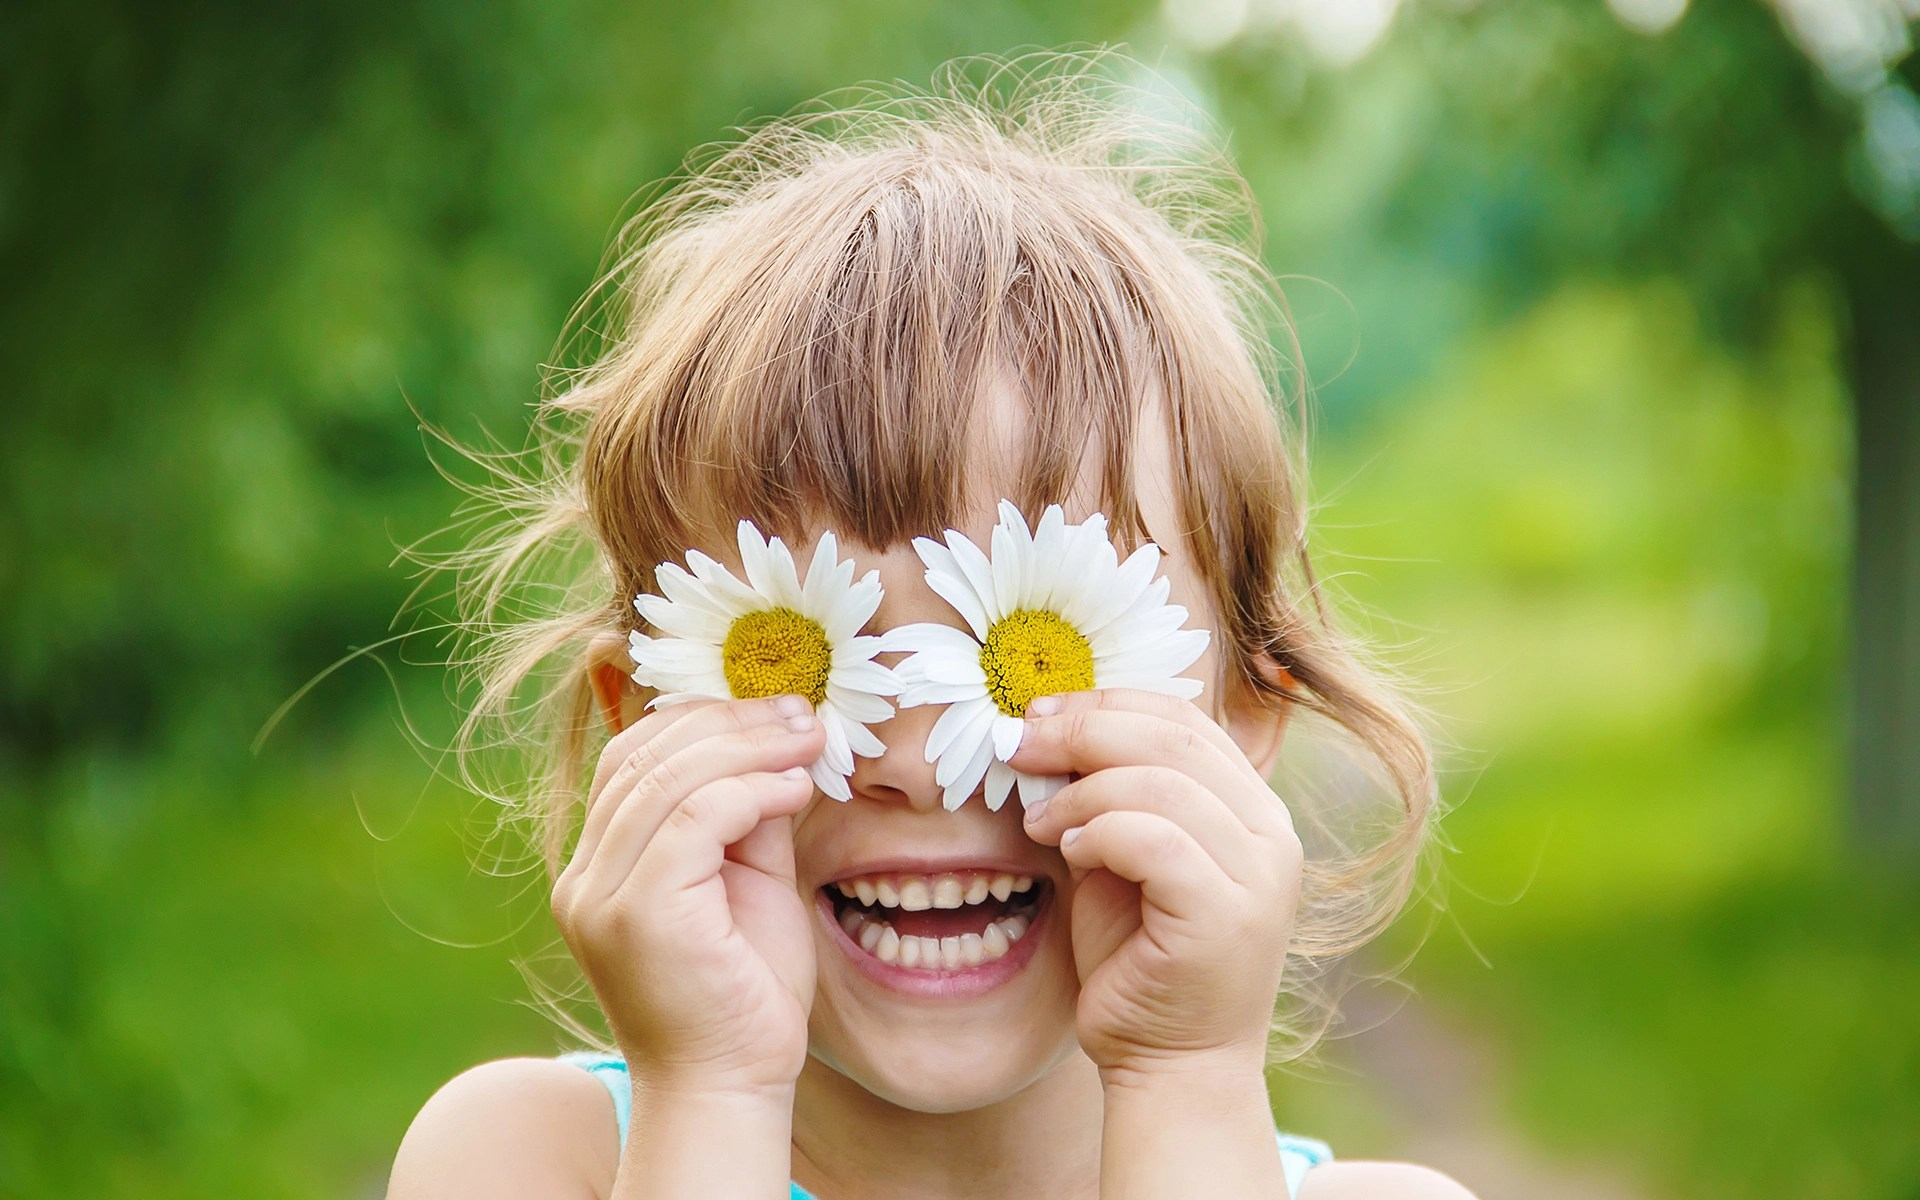 3 Simple Ways to Cultivate Joy Every Day - the girl is holding chamomile flowers in her hands. Selective focus